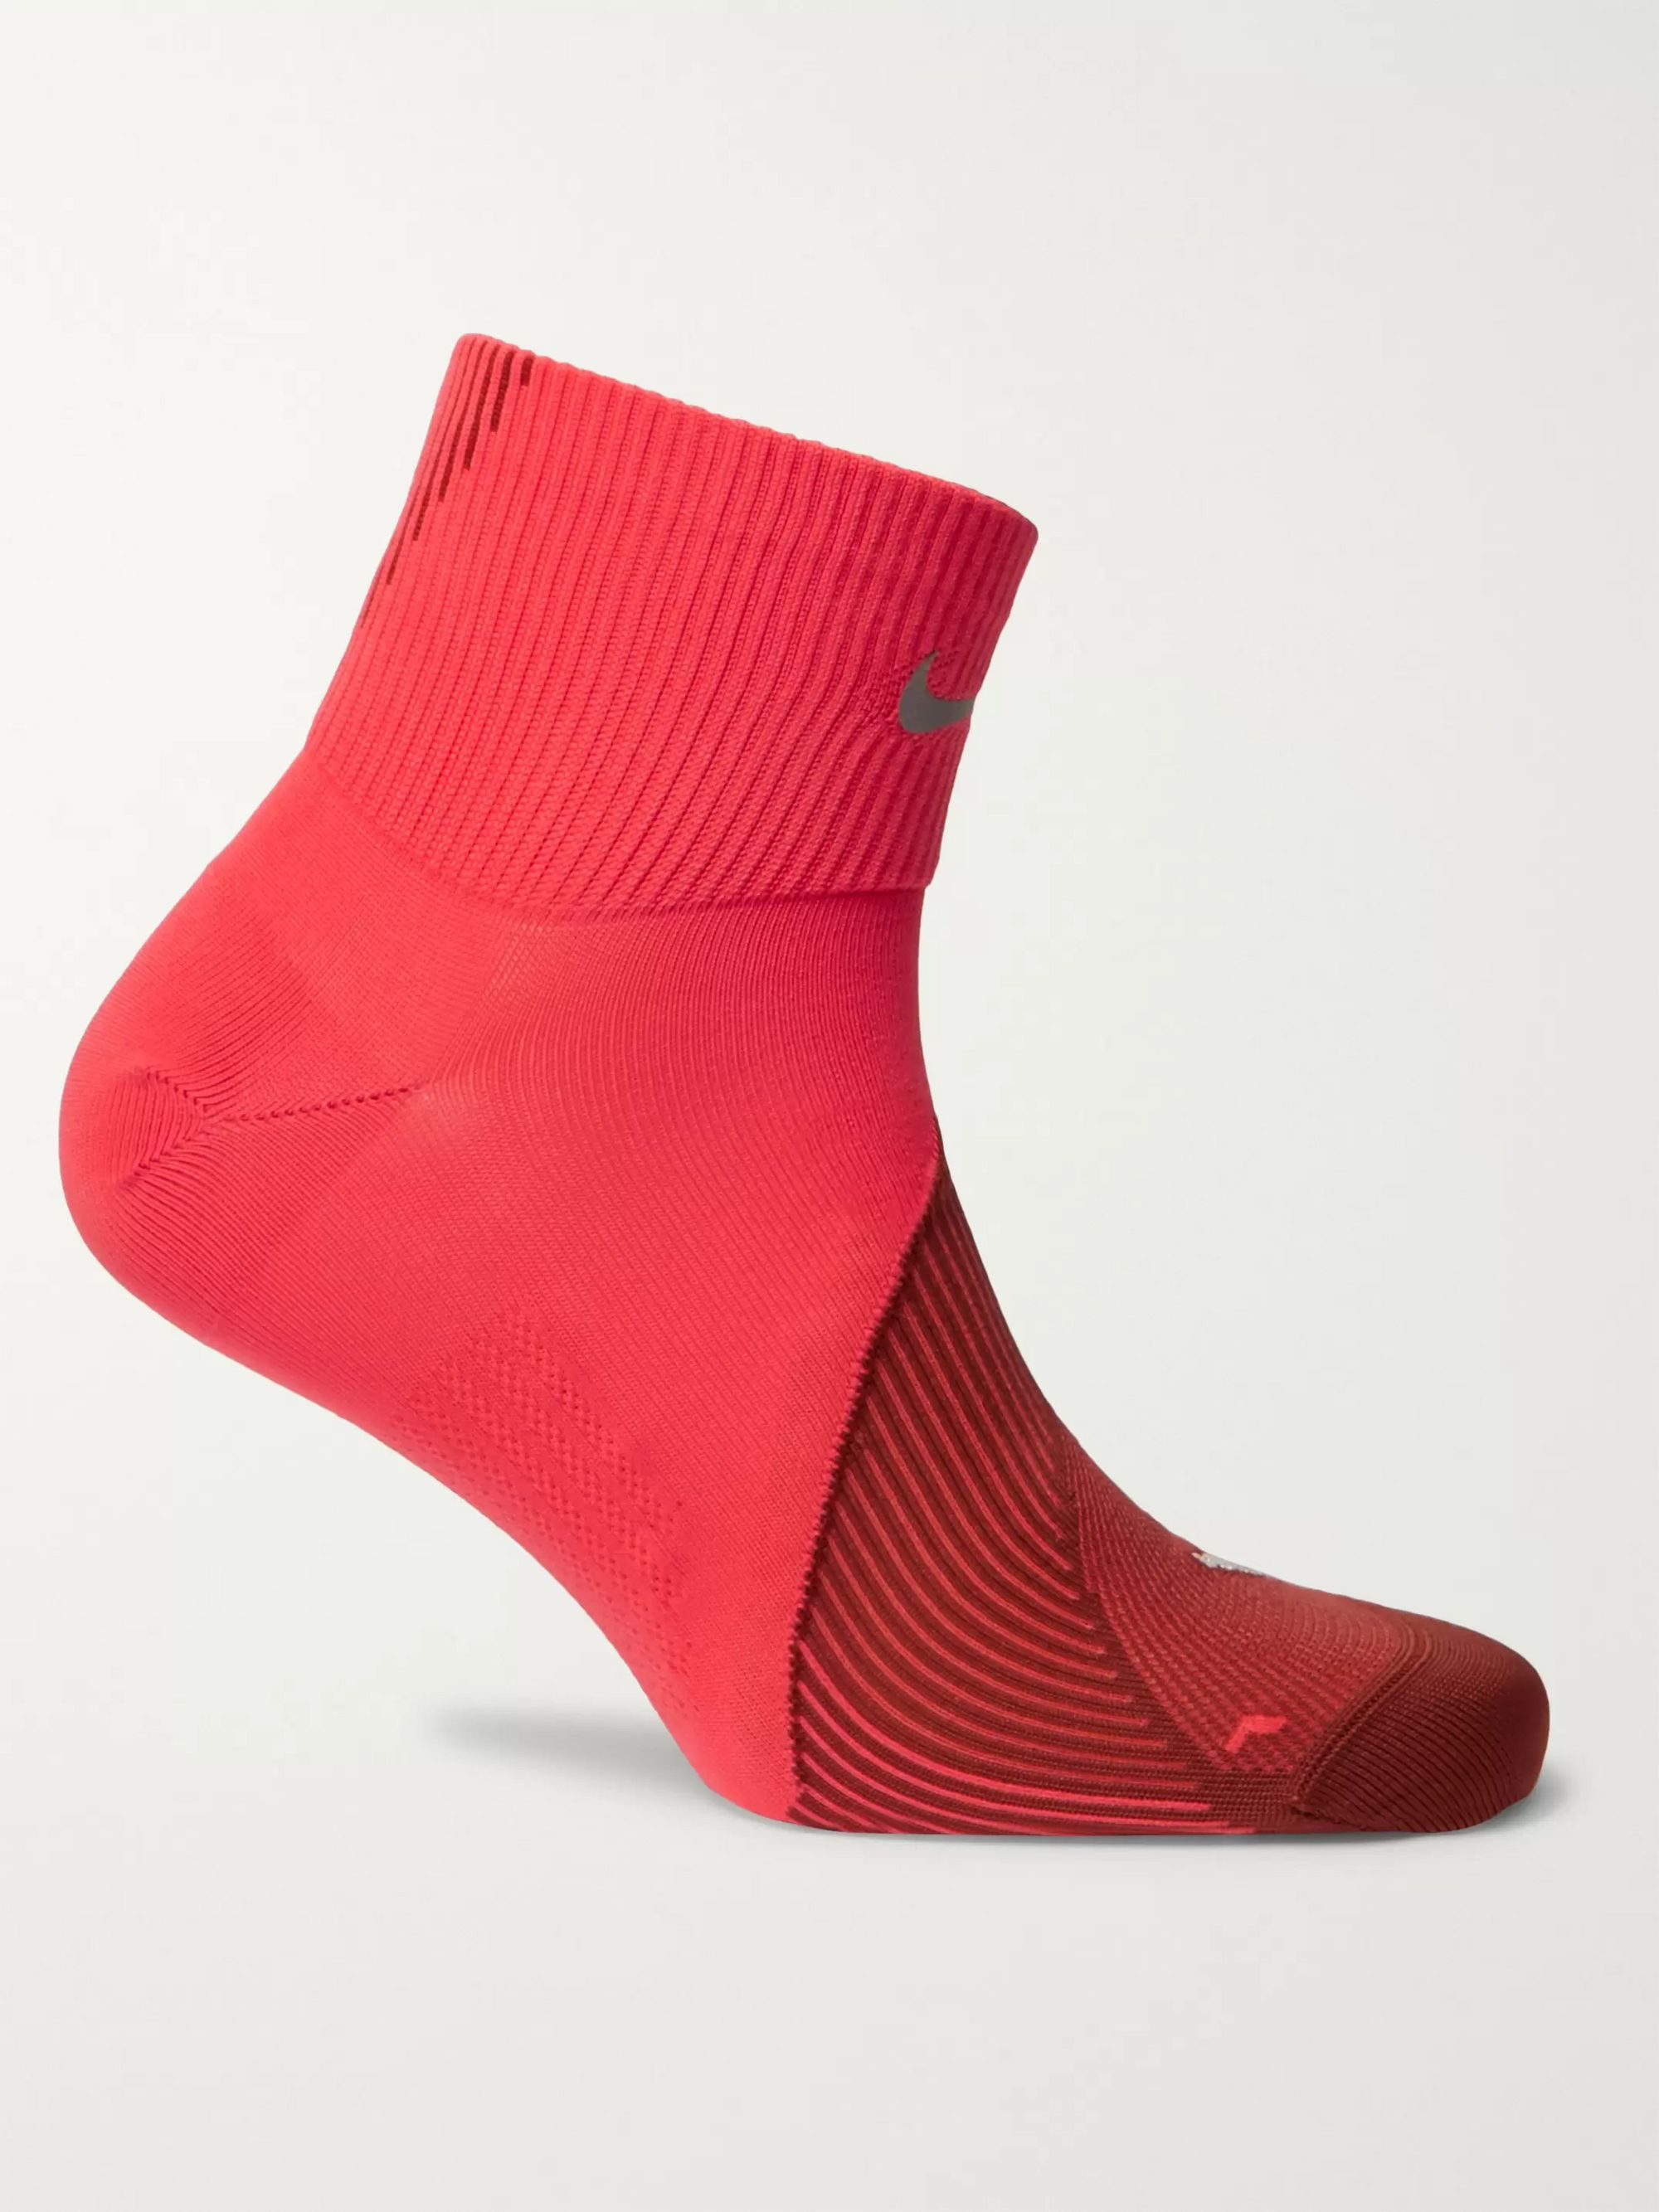 Nike Running Spark Lightweight Quarter Stretch-Knit Running Socks